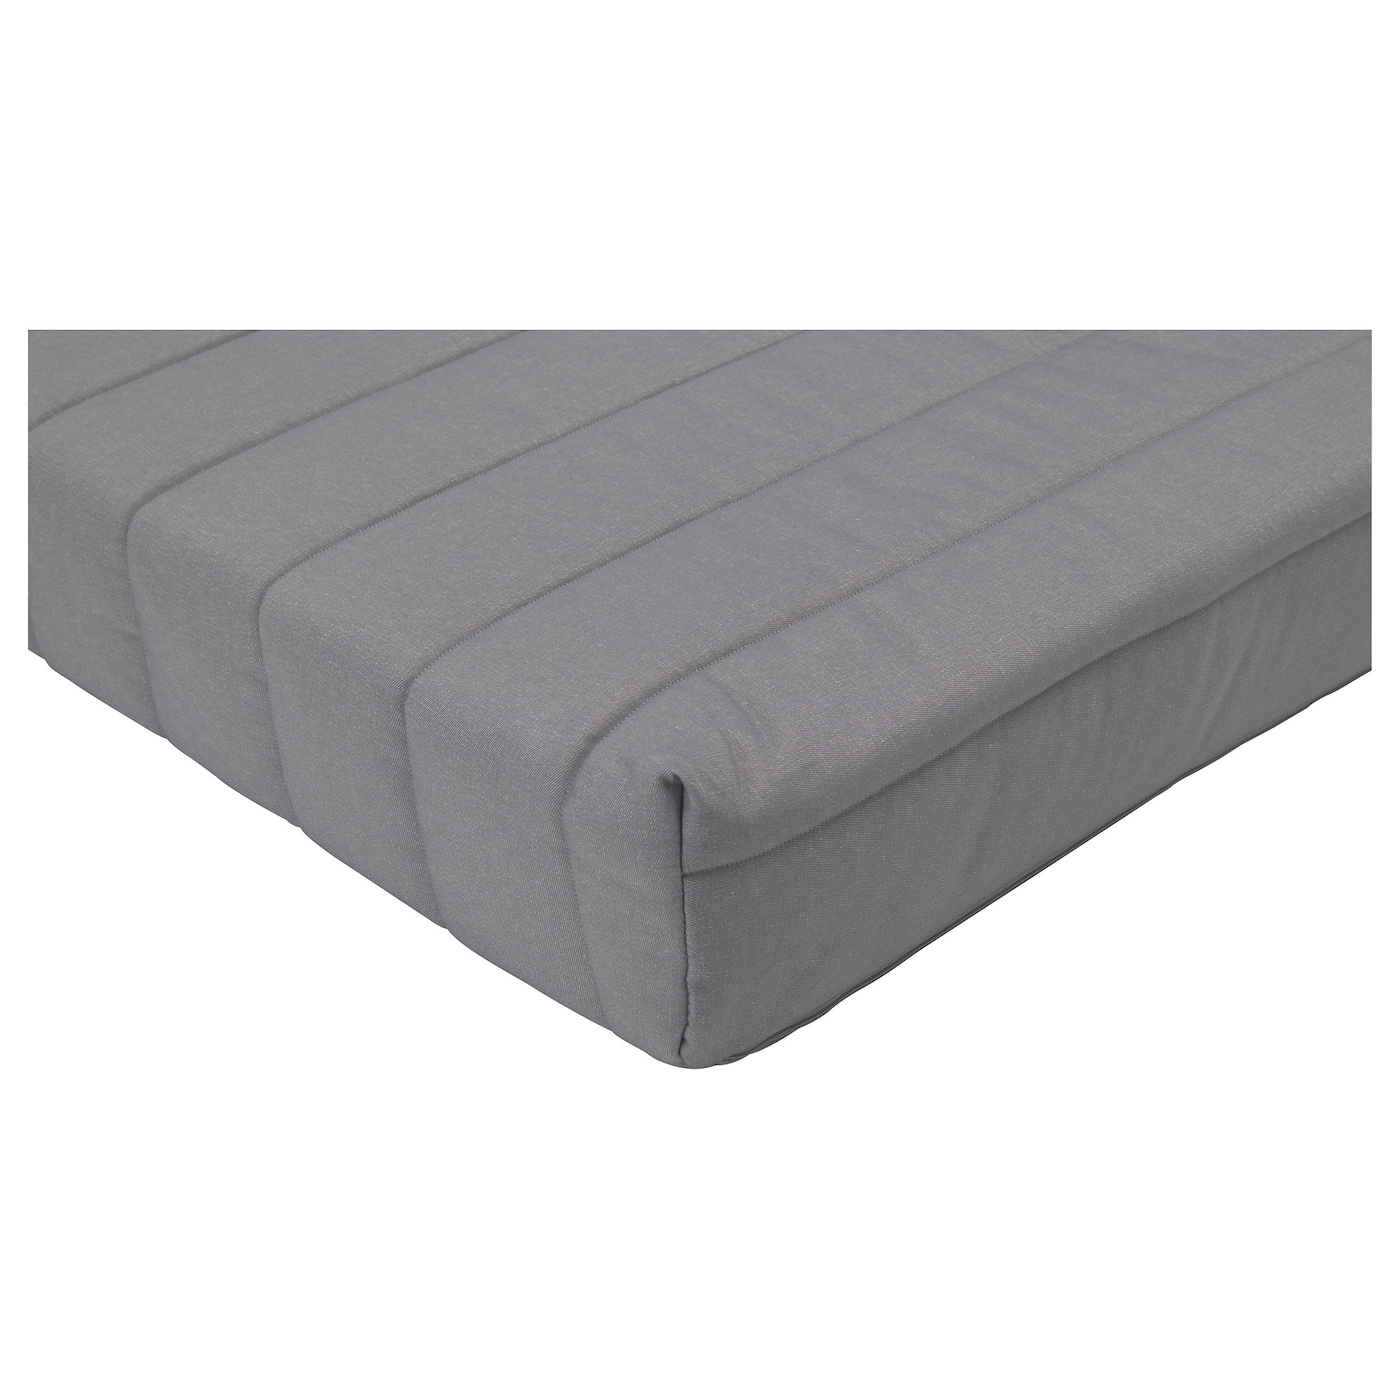 Ikea Ps LÖvÅs Mattress A Simple Firm Foam For Use Every Night